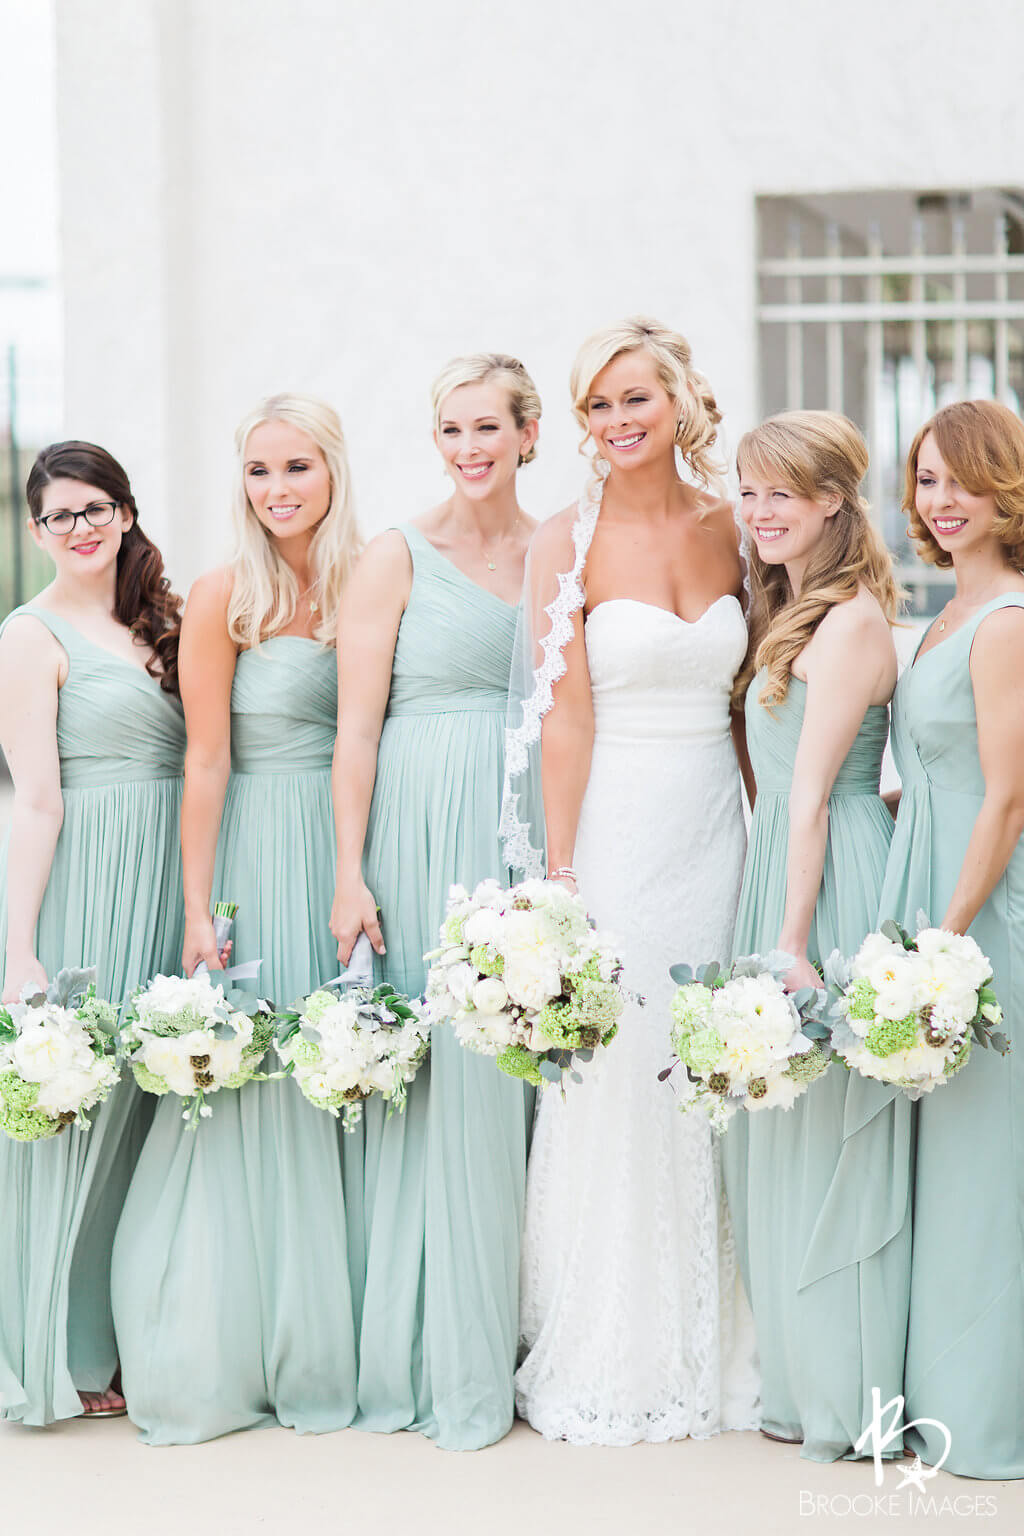 hair-salon-jacksonville-wedding-hairstyles-23